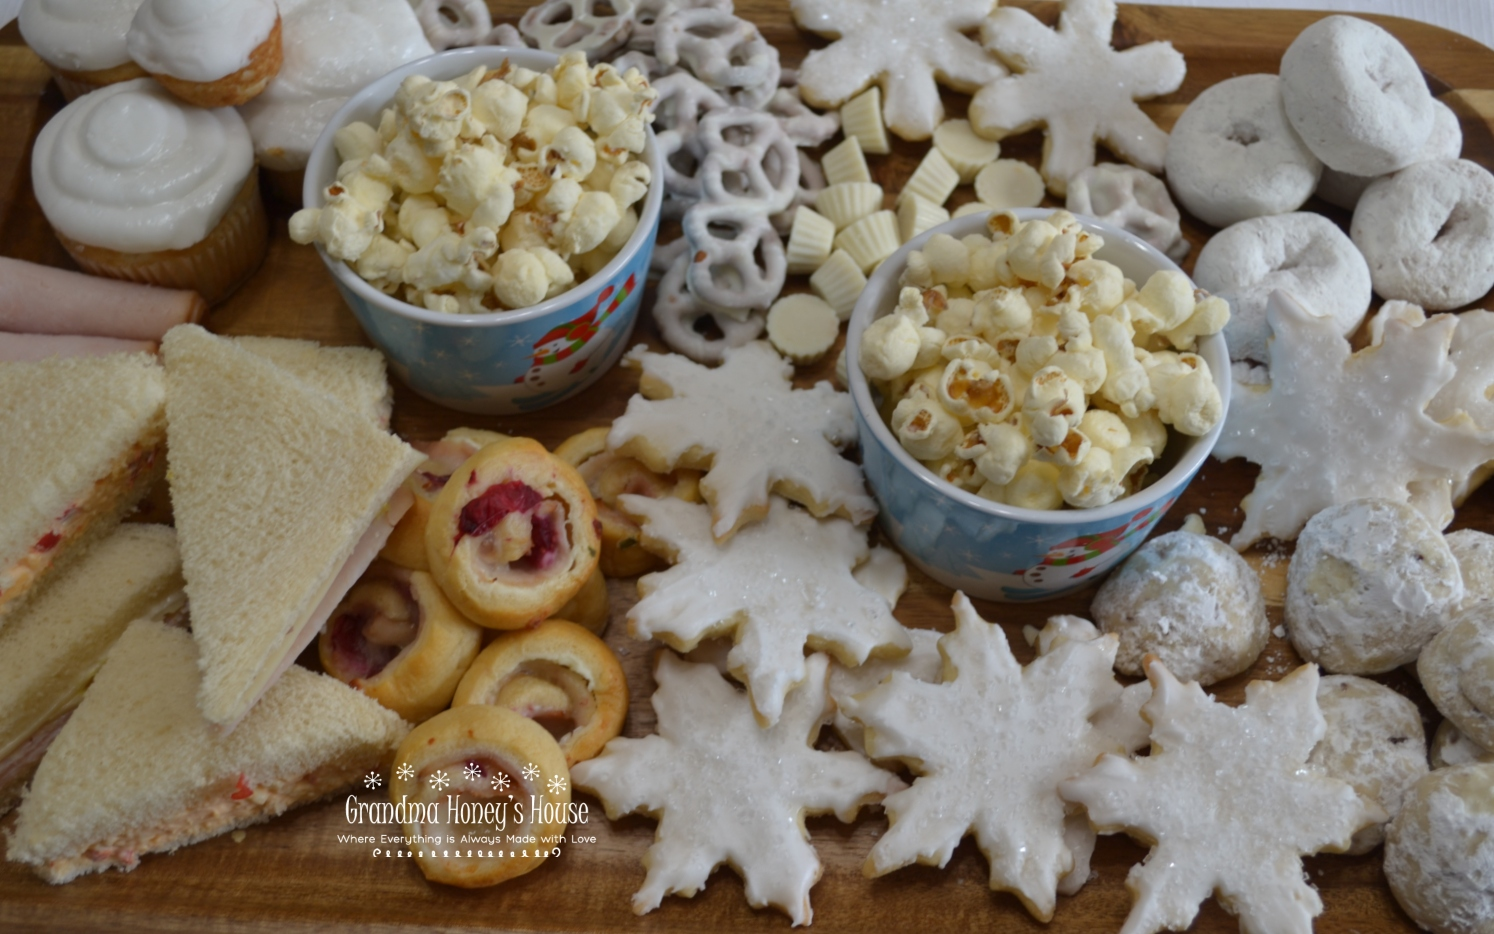 A Winter Wonderland Snack Board filled with savory and sweet, white treats to enjoy on a snowy day